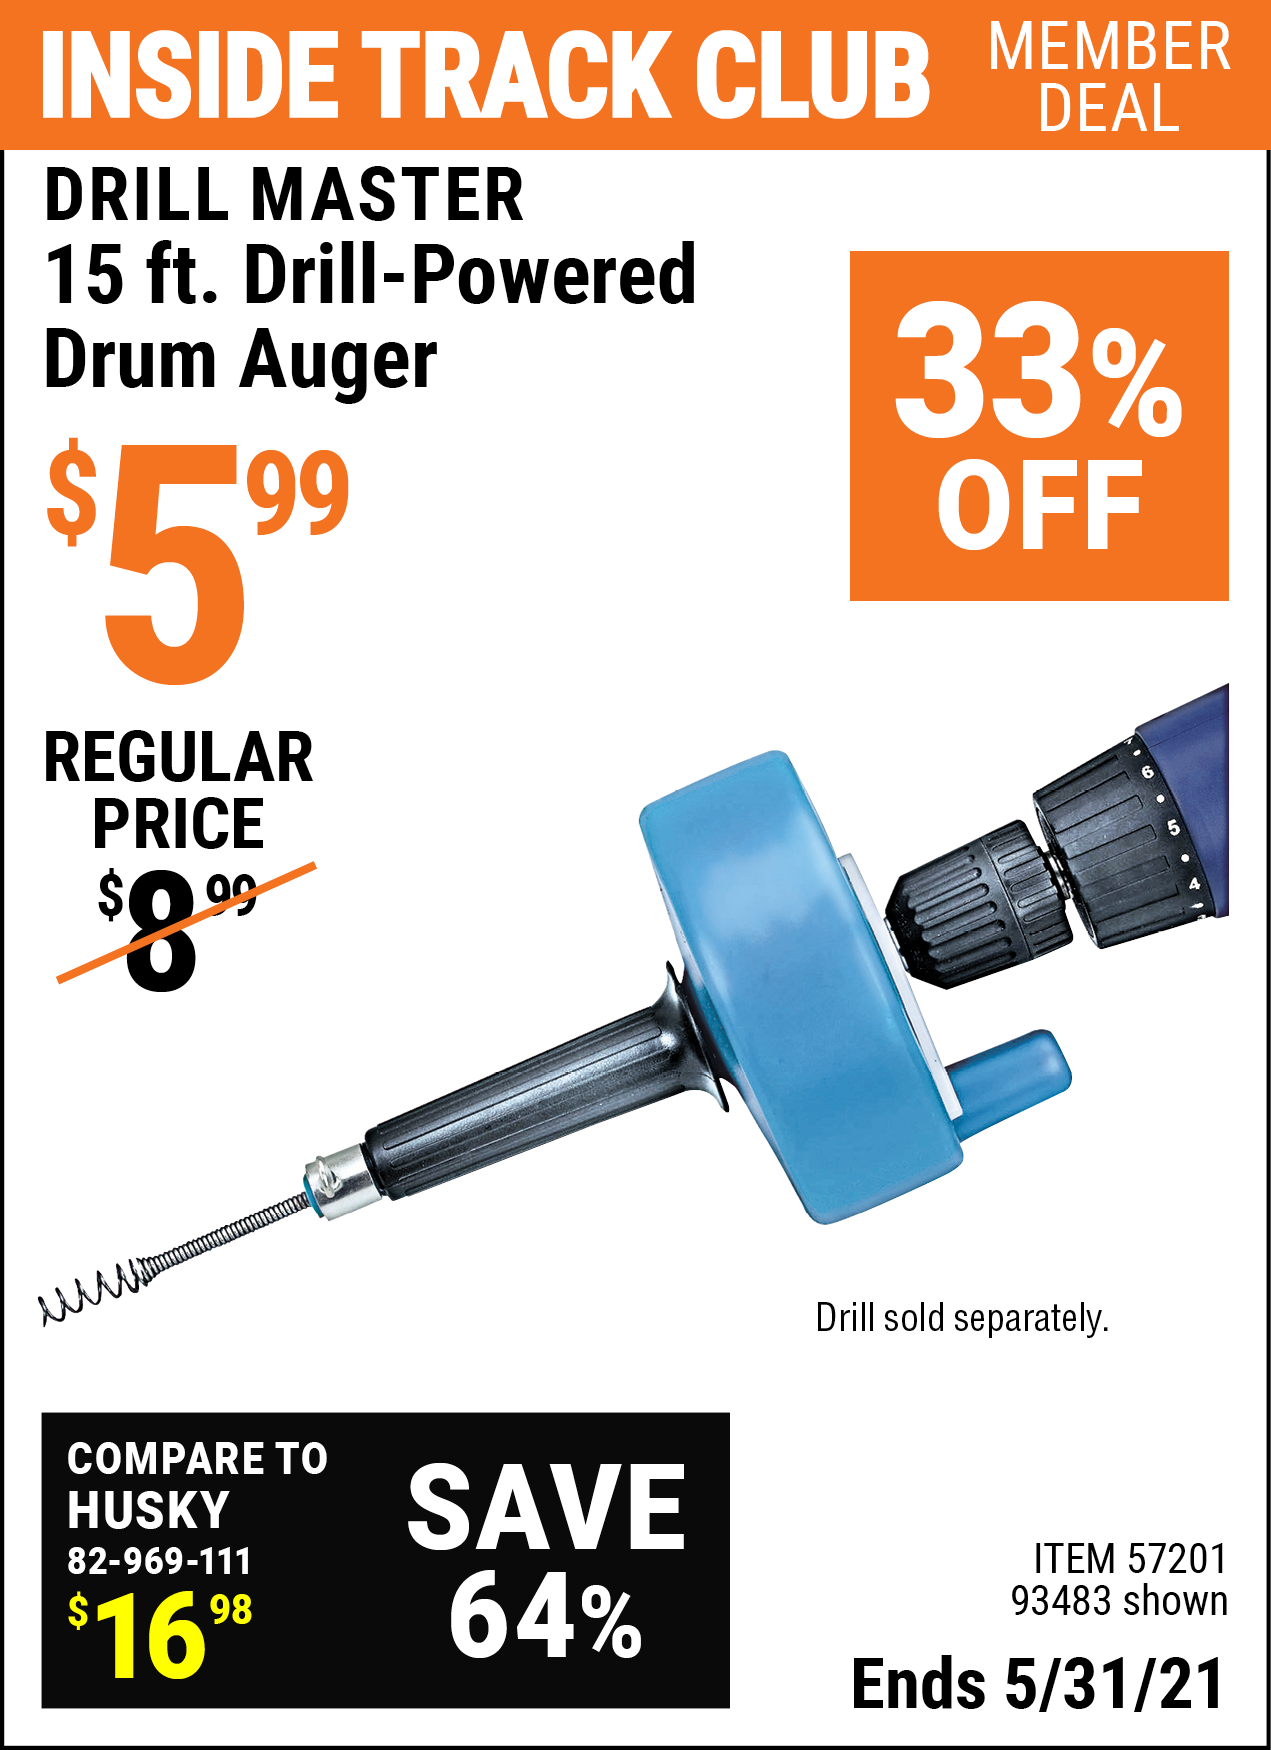 Inside Track Club members can buy the DRILL MASTER 15 Ft. Drill-Powered Drum Auger (Item 93483/57201) for $5.99, valid through 5/31/2021.